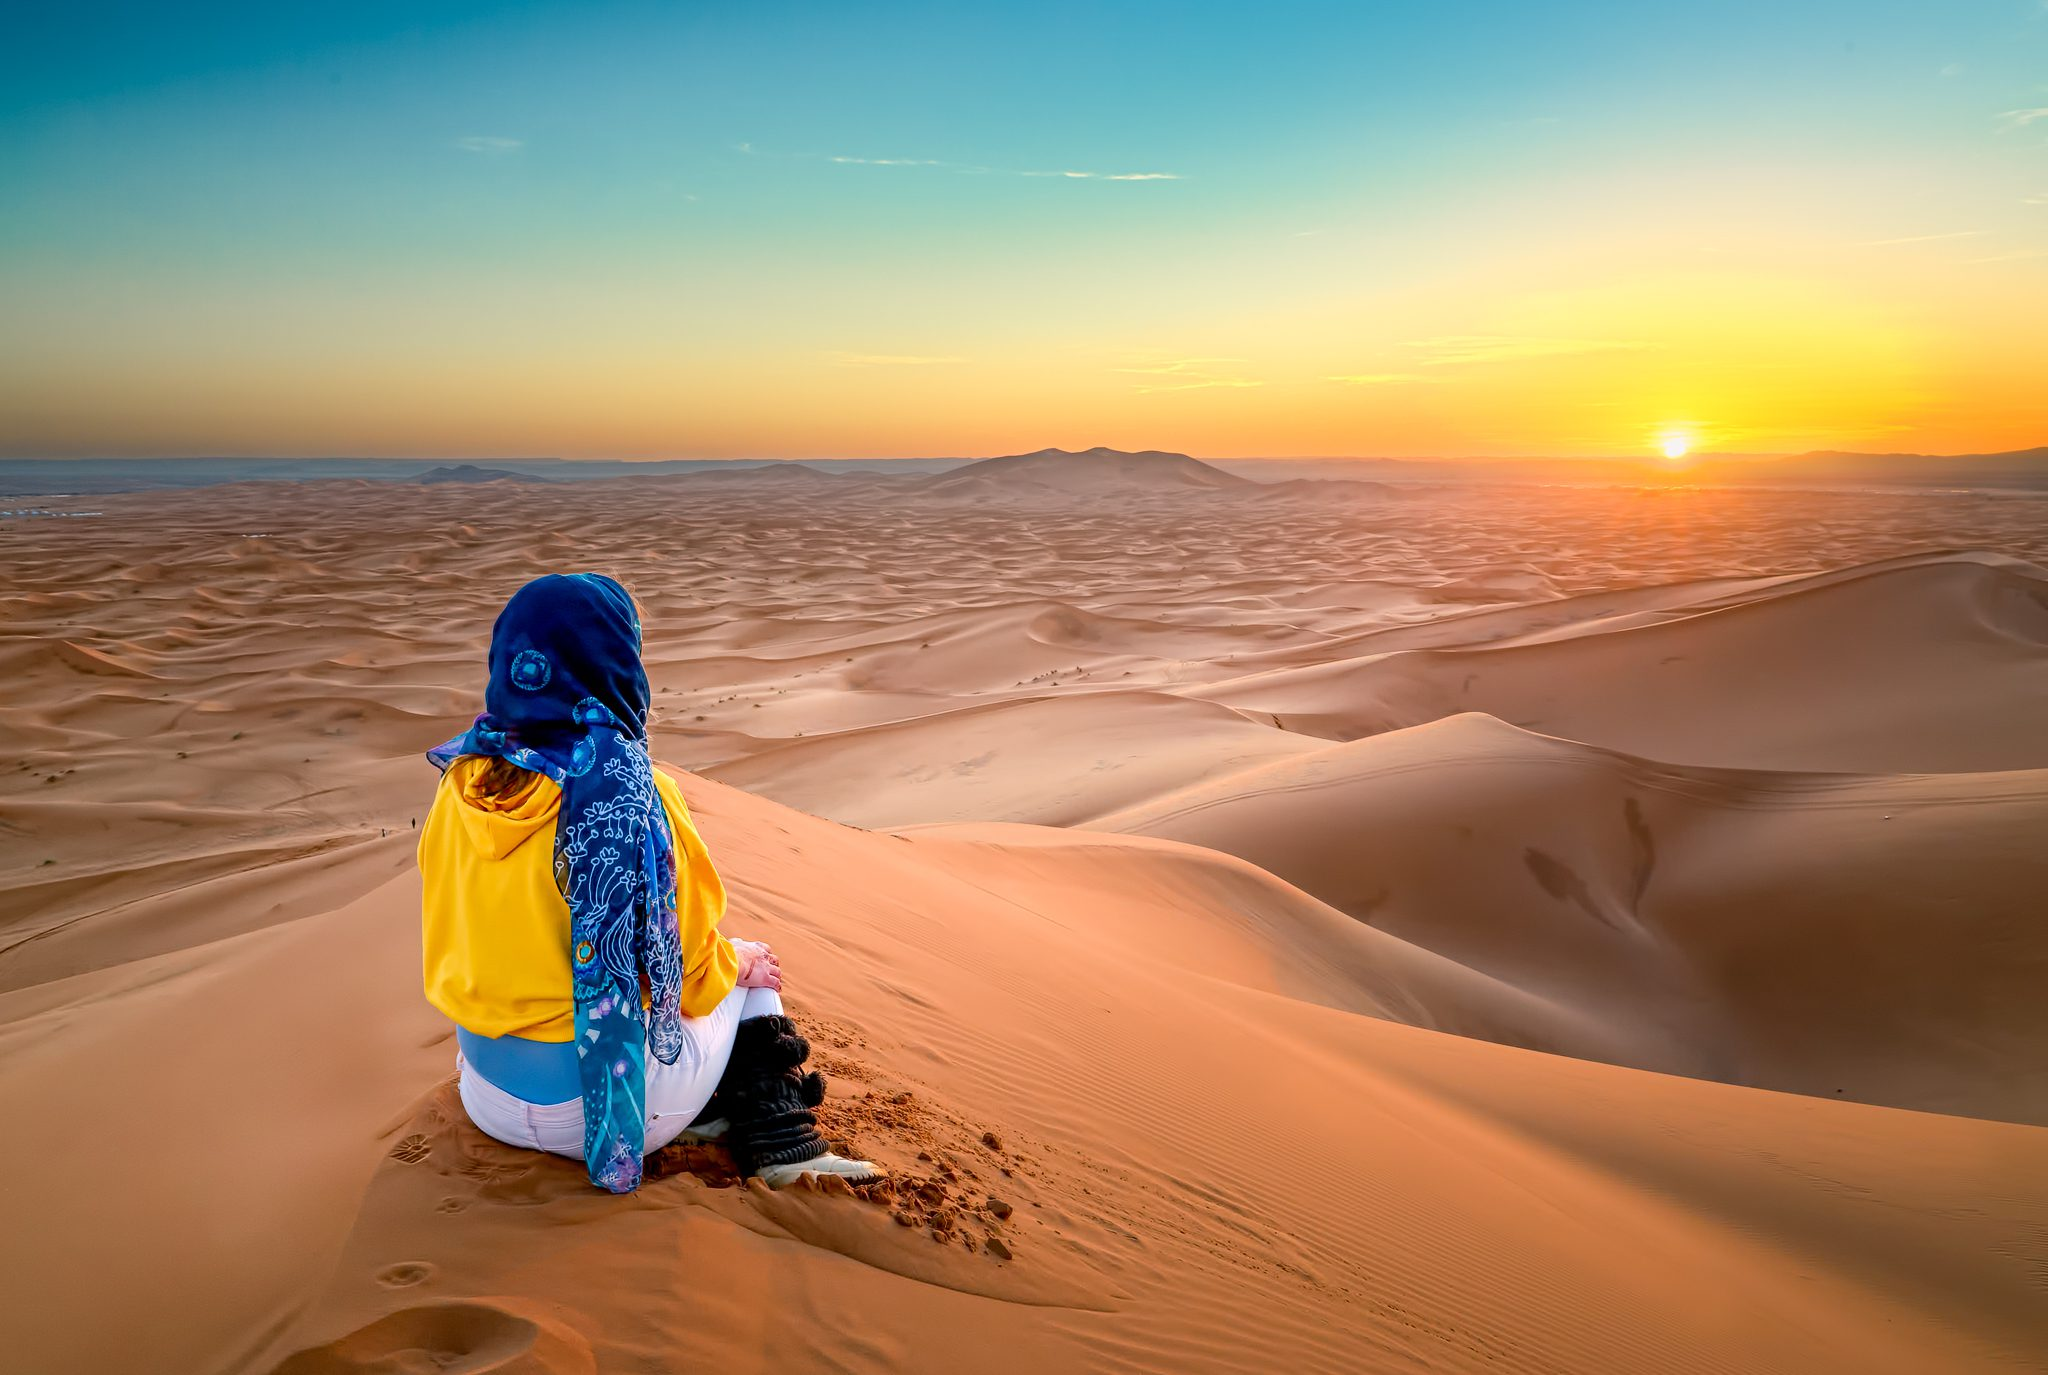 Would you agree that beauty can be dangerous? I would definitely say so in case of Sahara. It is so breathtakingly sublime, it is easy to forget just how unforgiving it can be.